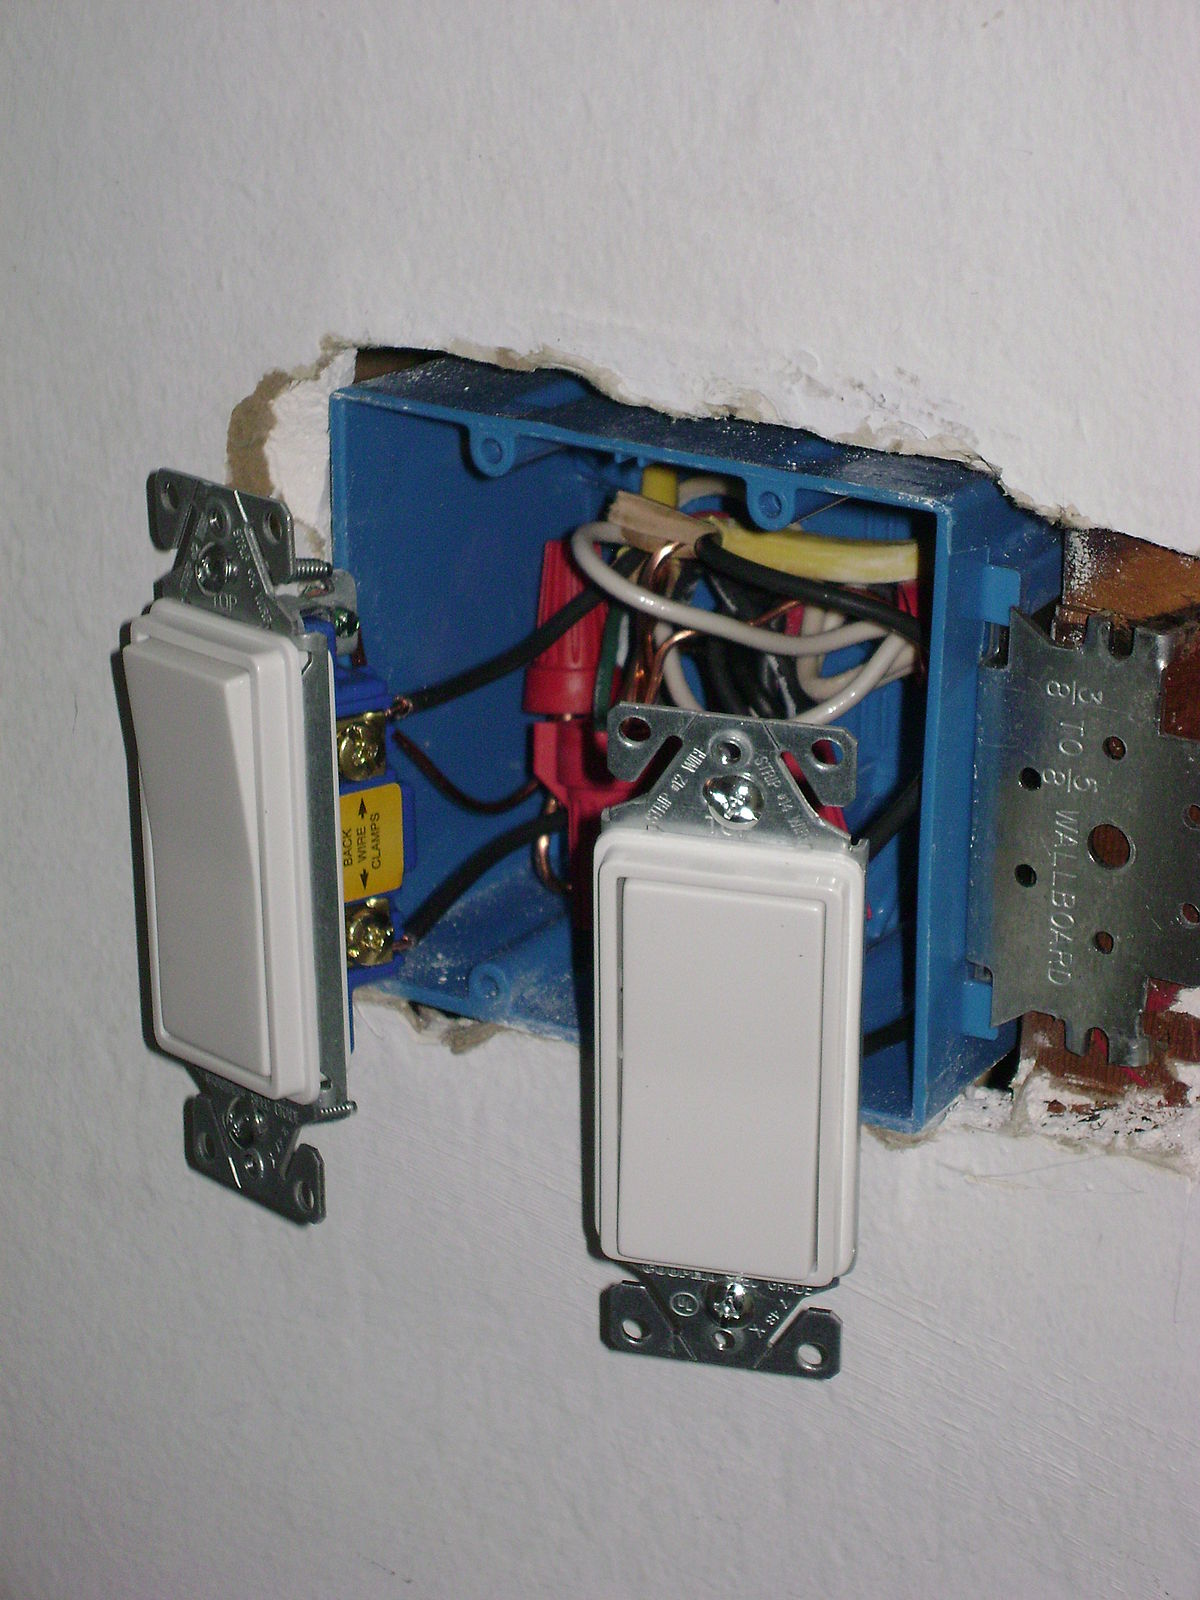 Wiring Up A 4 Way Light Switch Data Schema House Wire Diagram Wikipedia Residential How To Uk